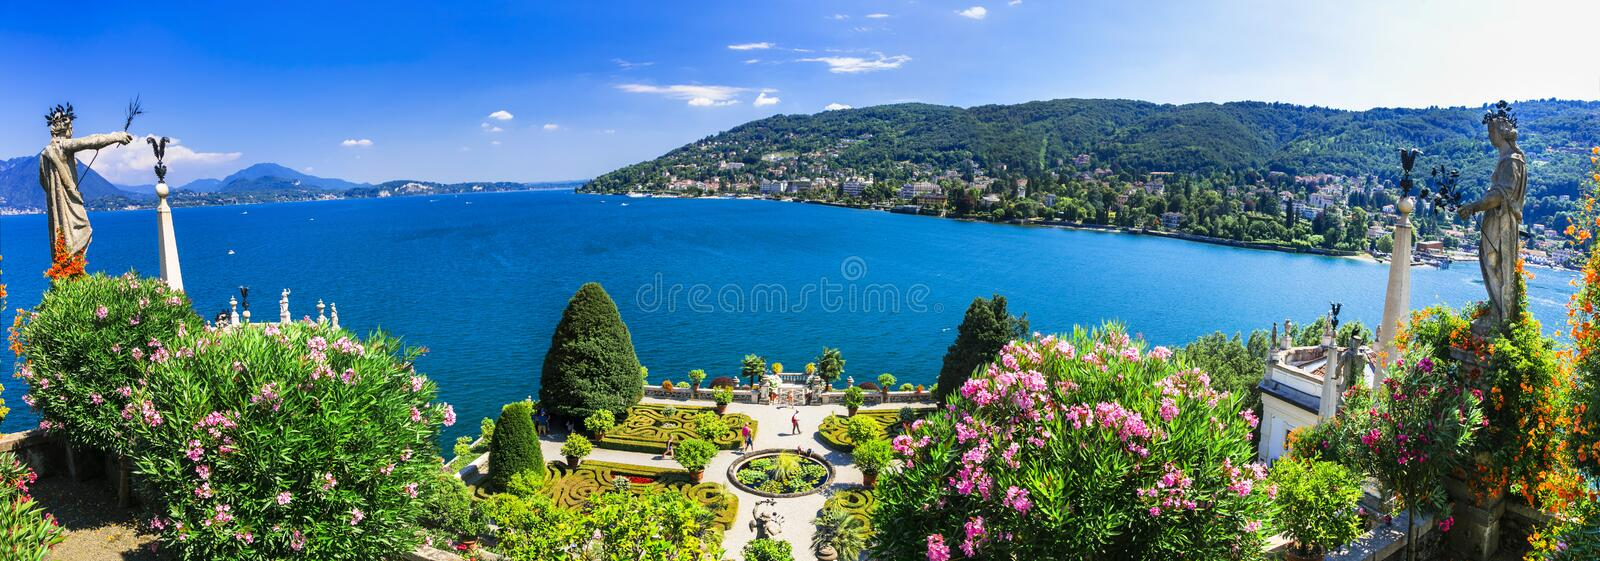 Lago Maggiore - beautiful isola Bella,panoramic view. Impressive lago maggiore,view with lake and mountains,North Italy royalty free stock photography